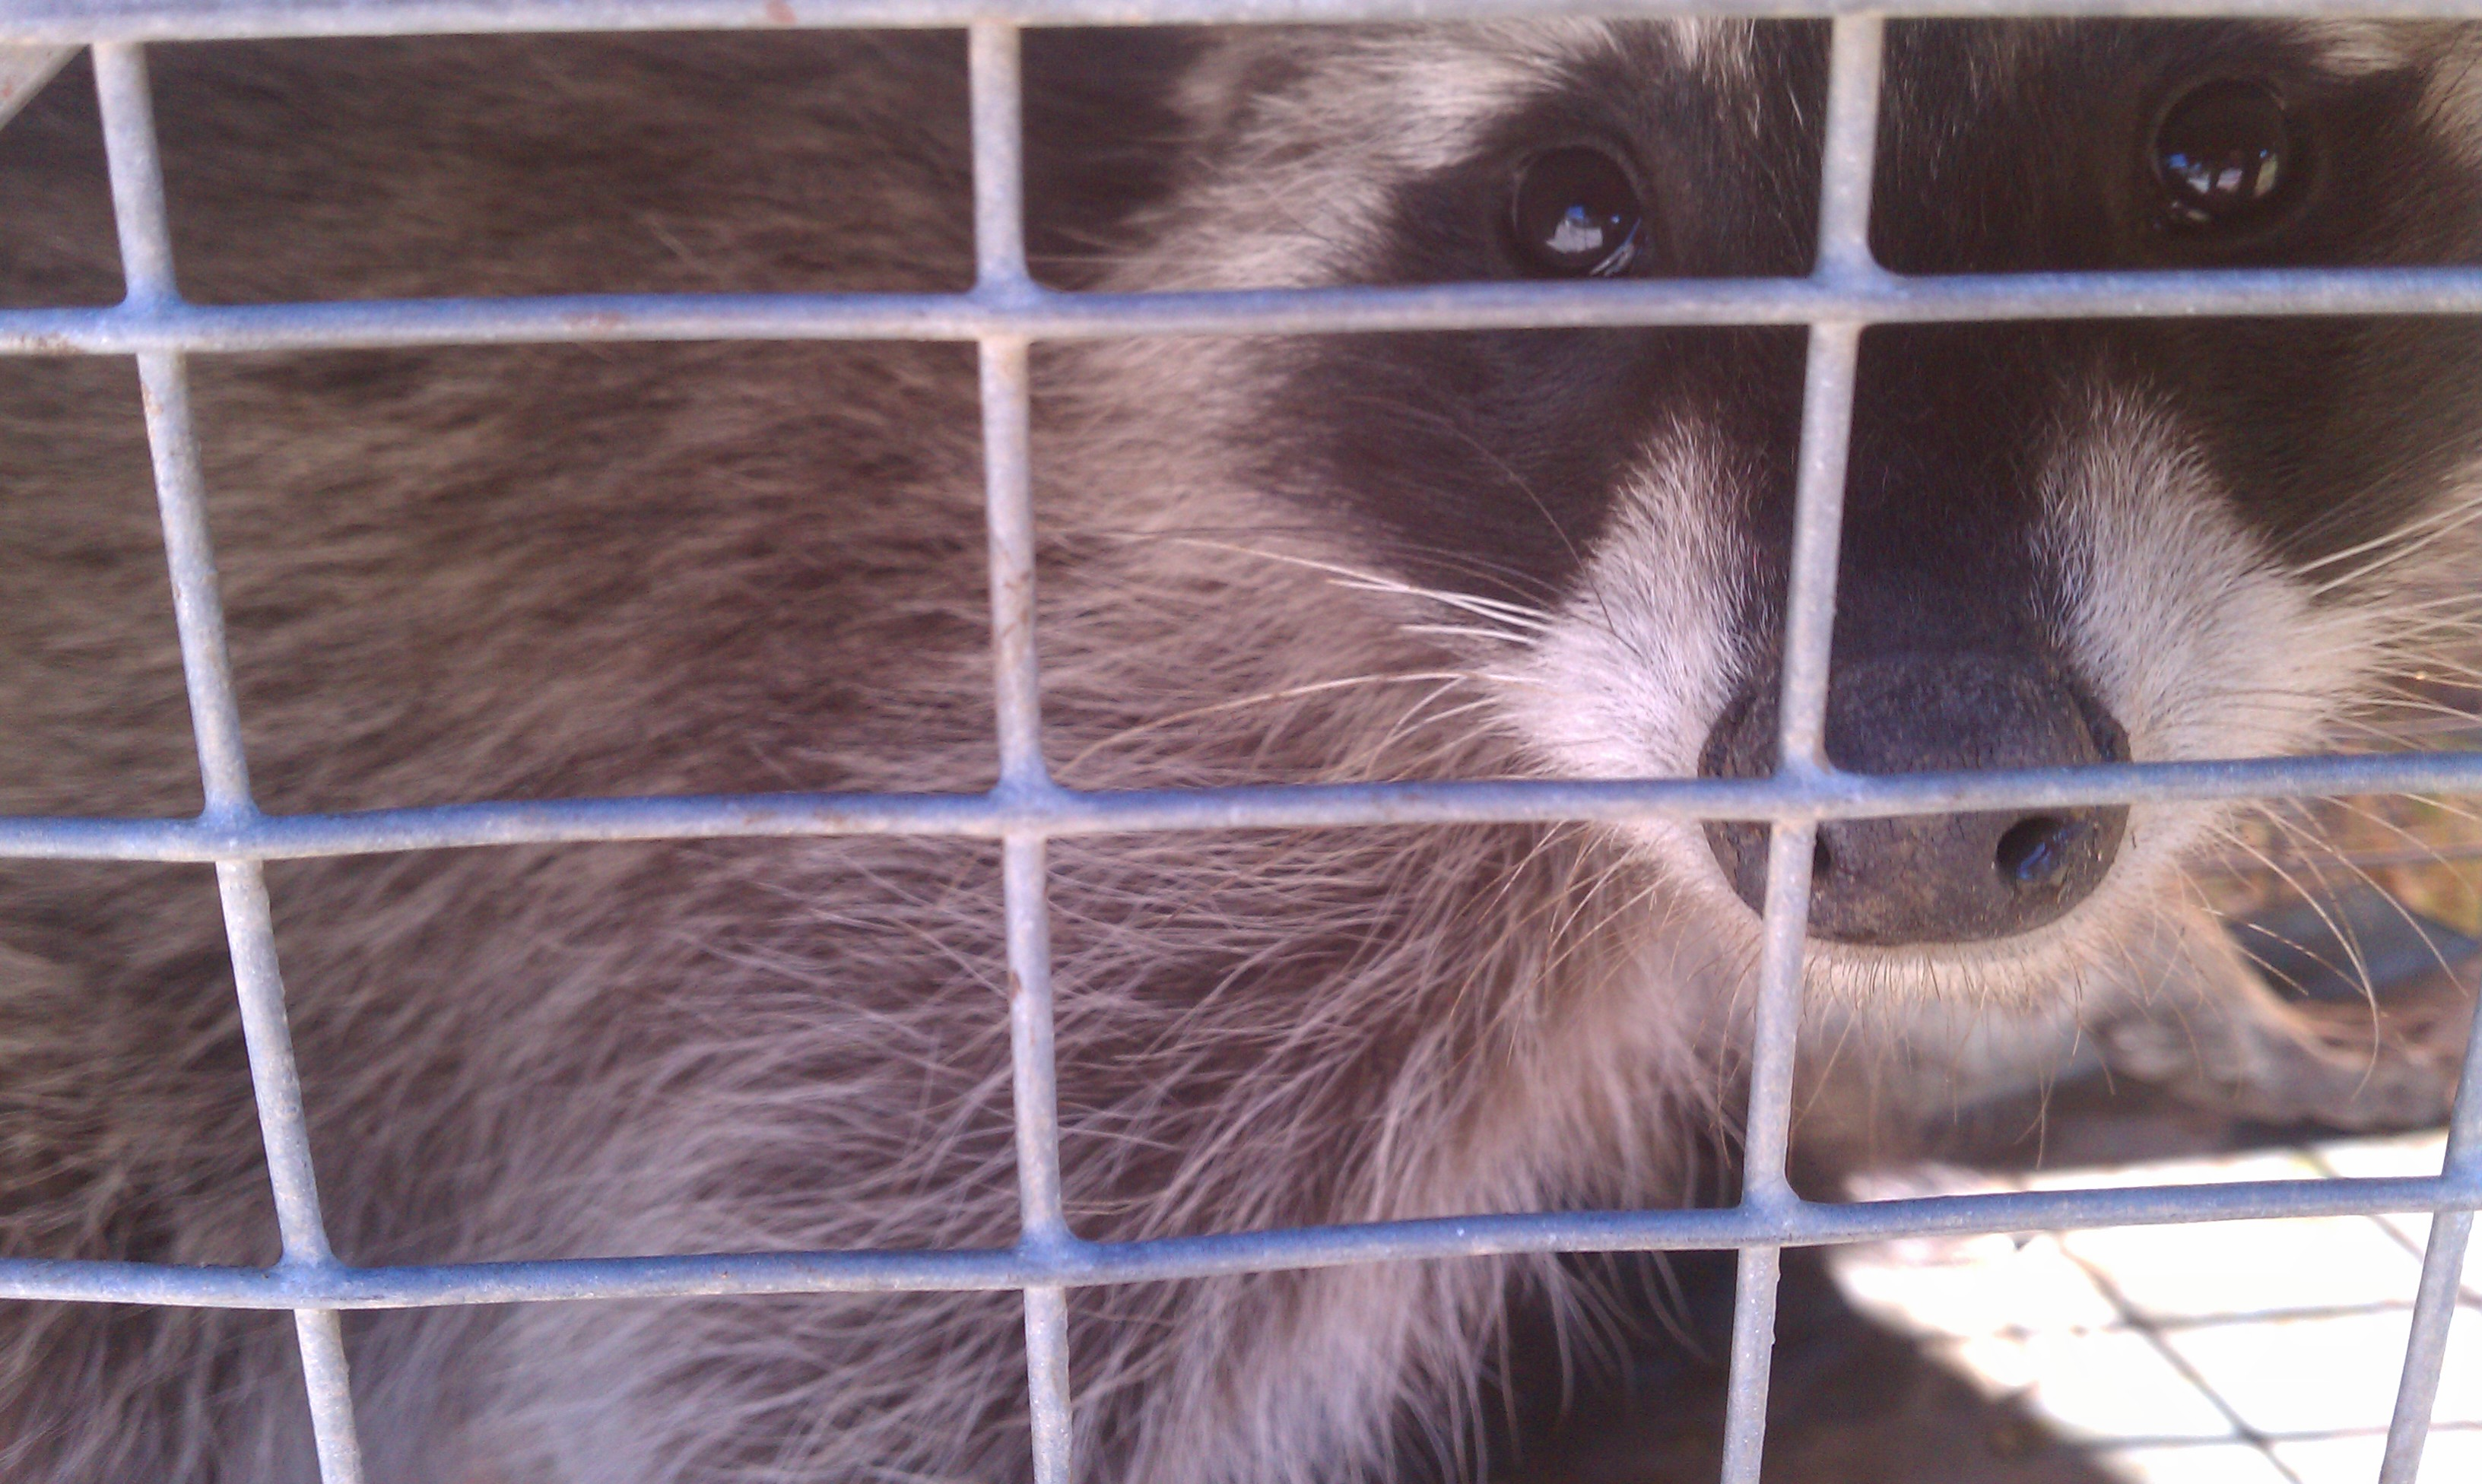 trapping nuisance racoons in america as an extremely profitable business Call united wildlife control today to get a free phone estimate for your home or business oregon nuisance wildlife removal your home, your lawn and your property from nuisance wildlife, such as: raccoons, bats our services include professional wildlife trapping and removal using.